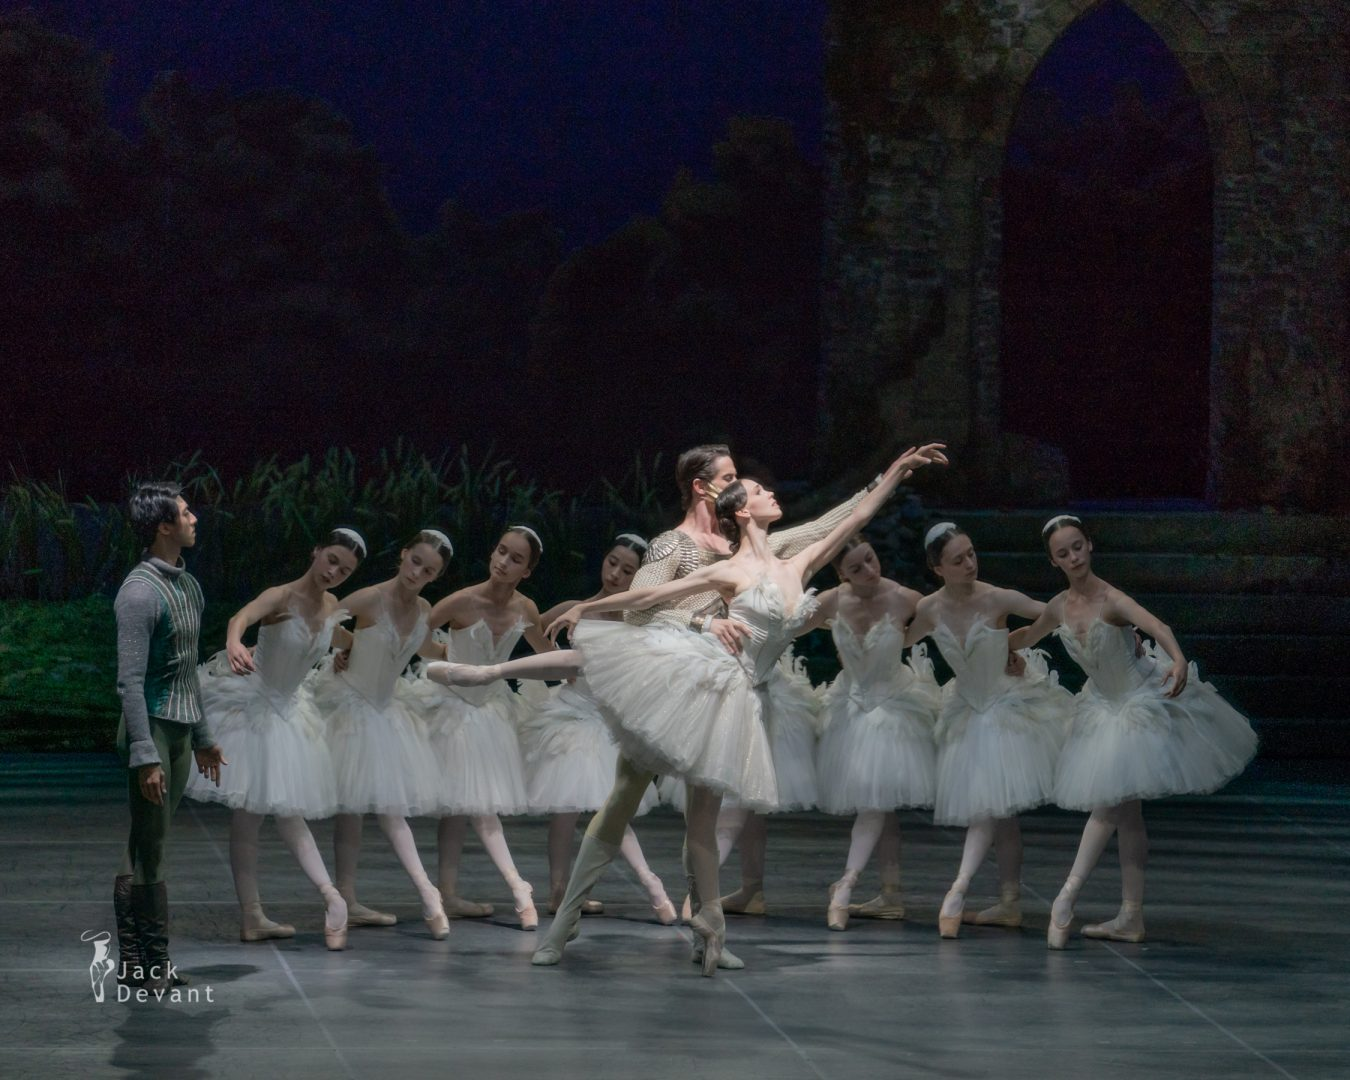 Viktorina Kapitonova last dance as Odette with Ballett Zürich 2